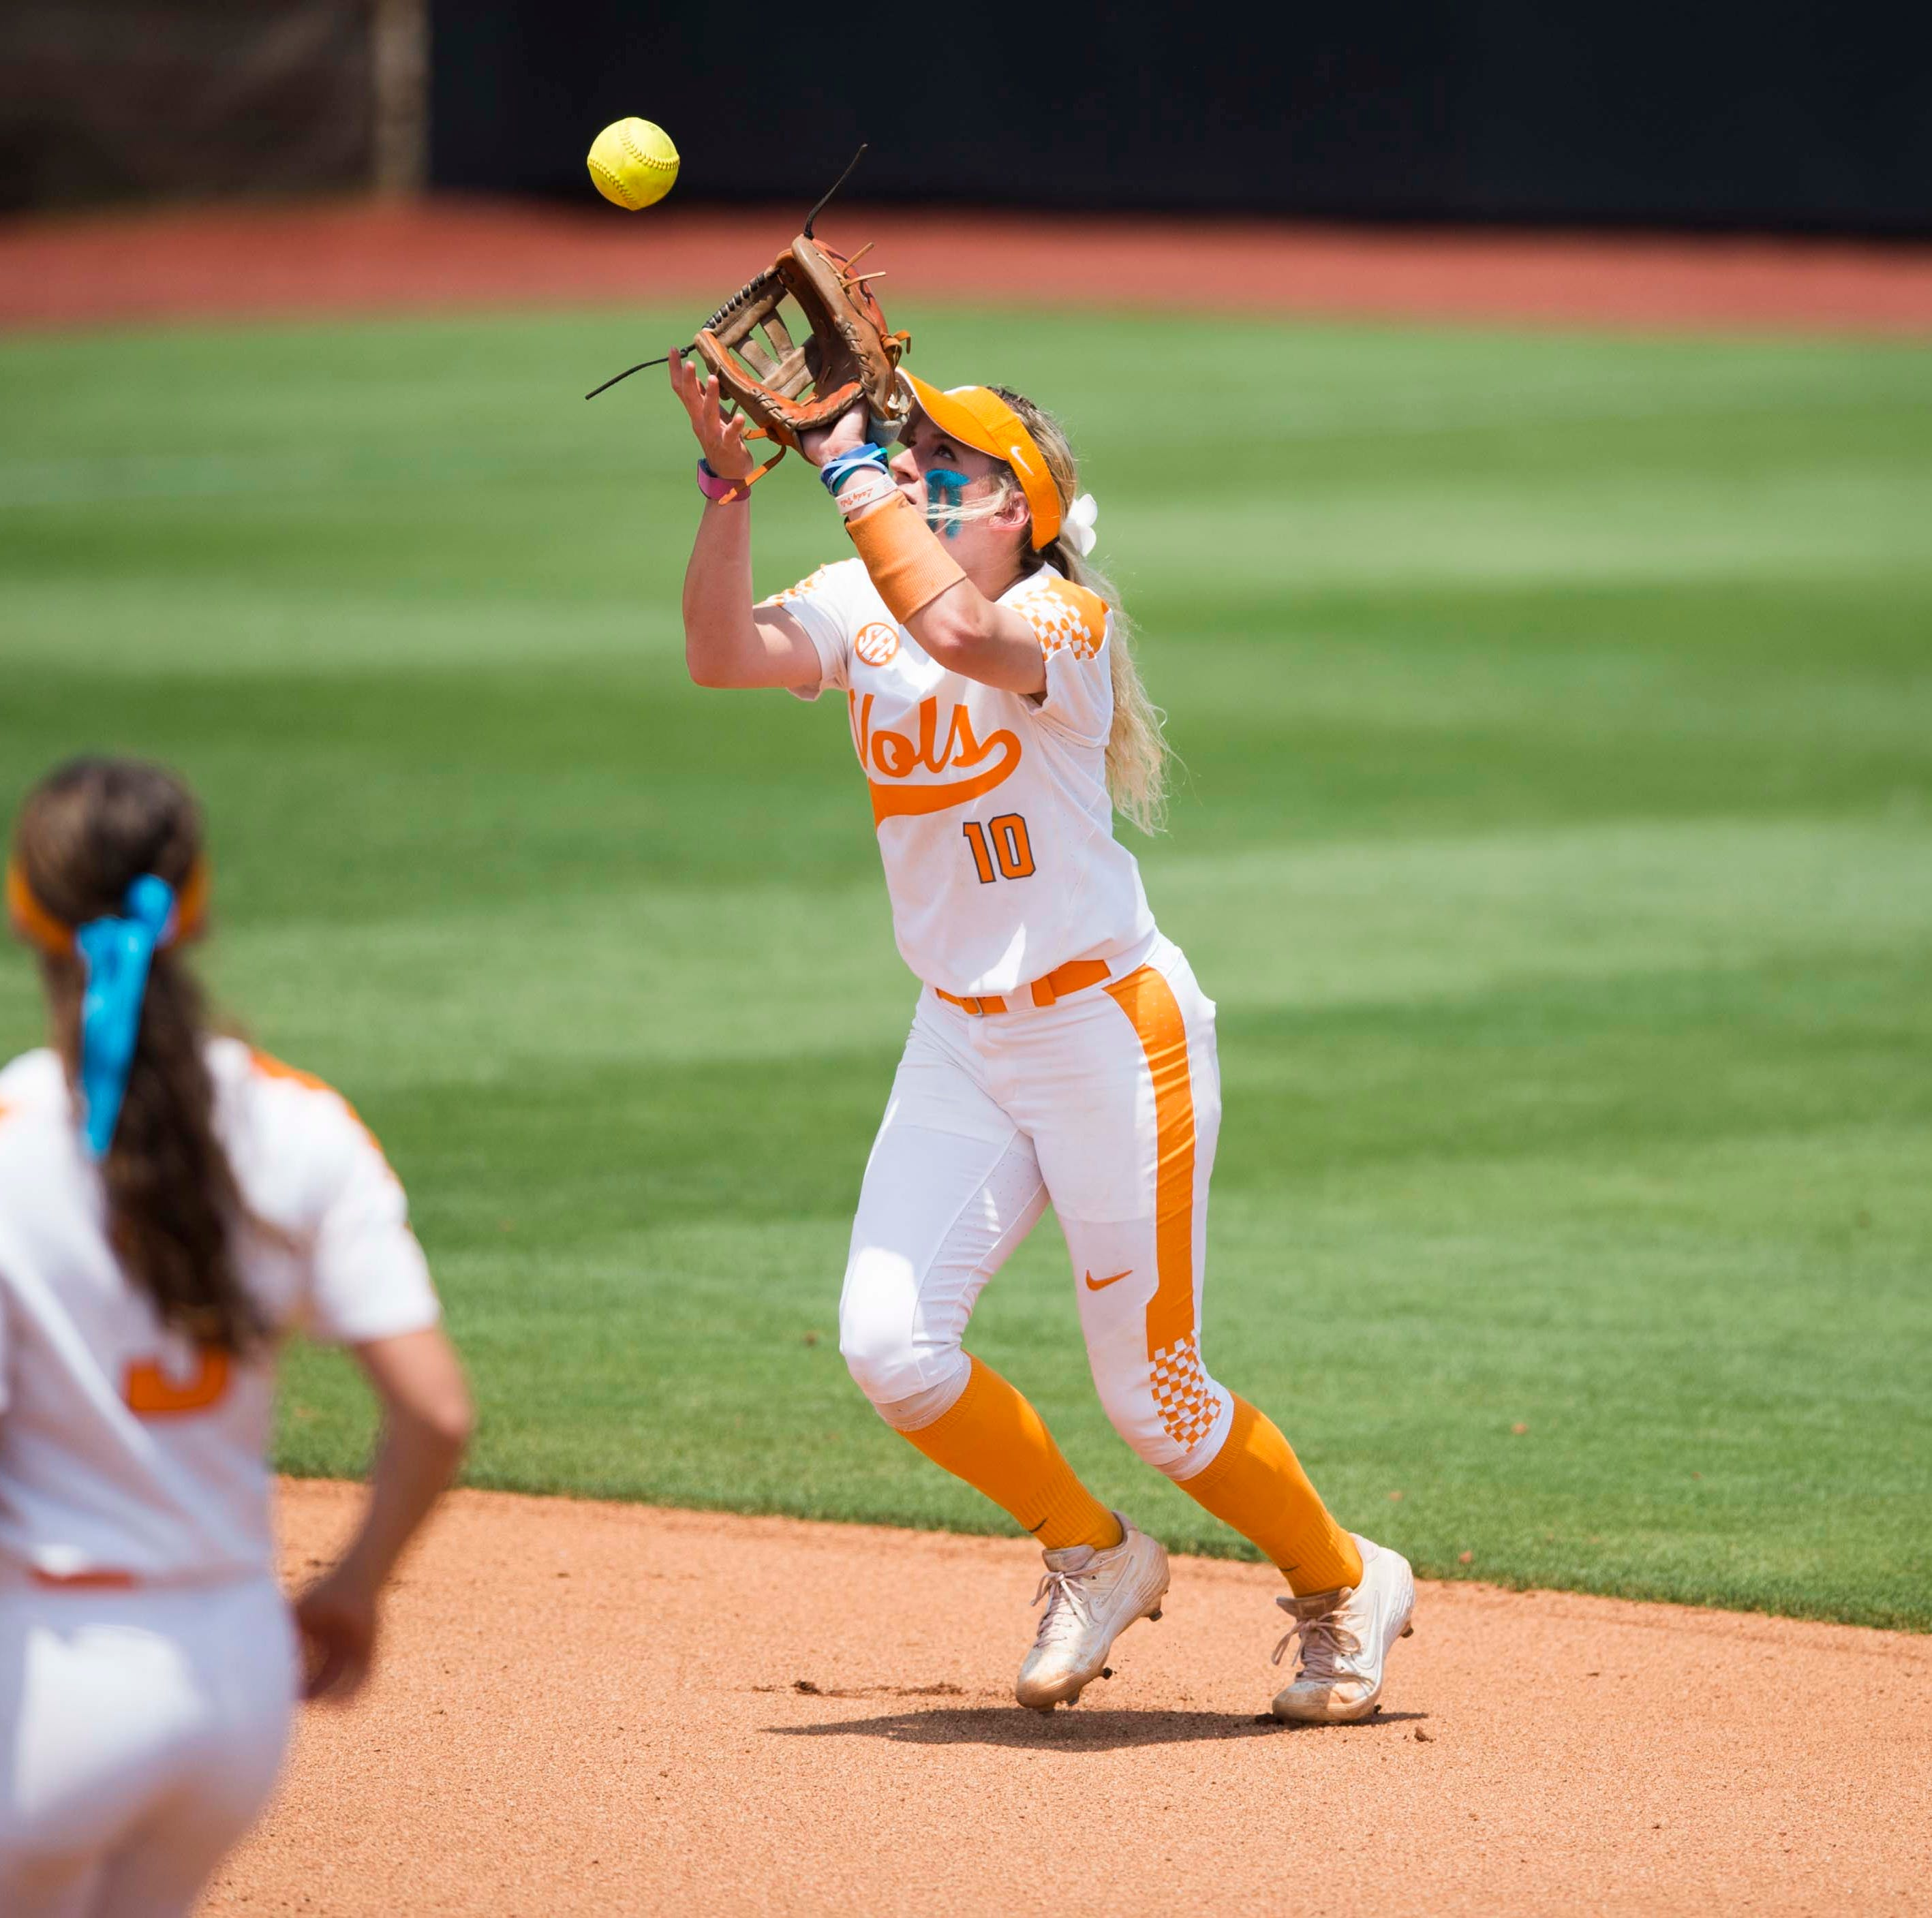 Lady Vols' Super Regional vs. Florida feels familiar